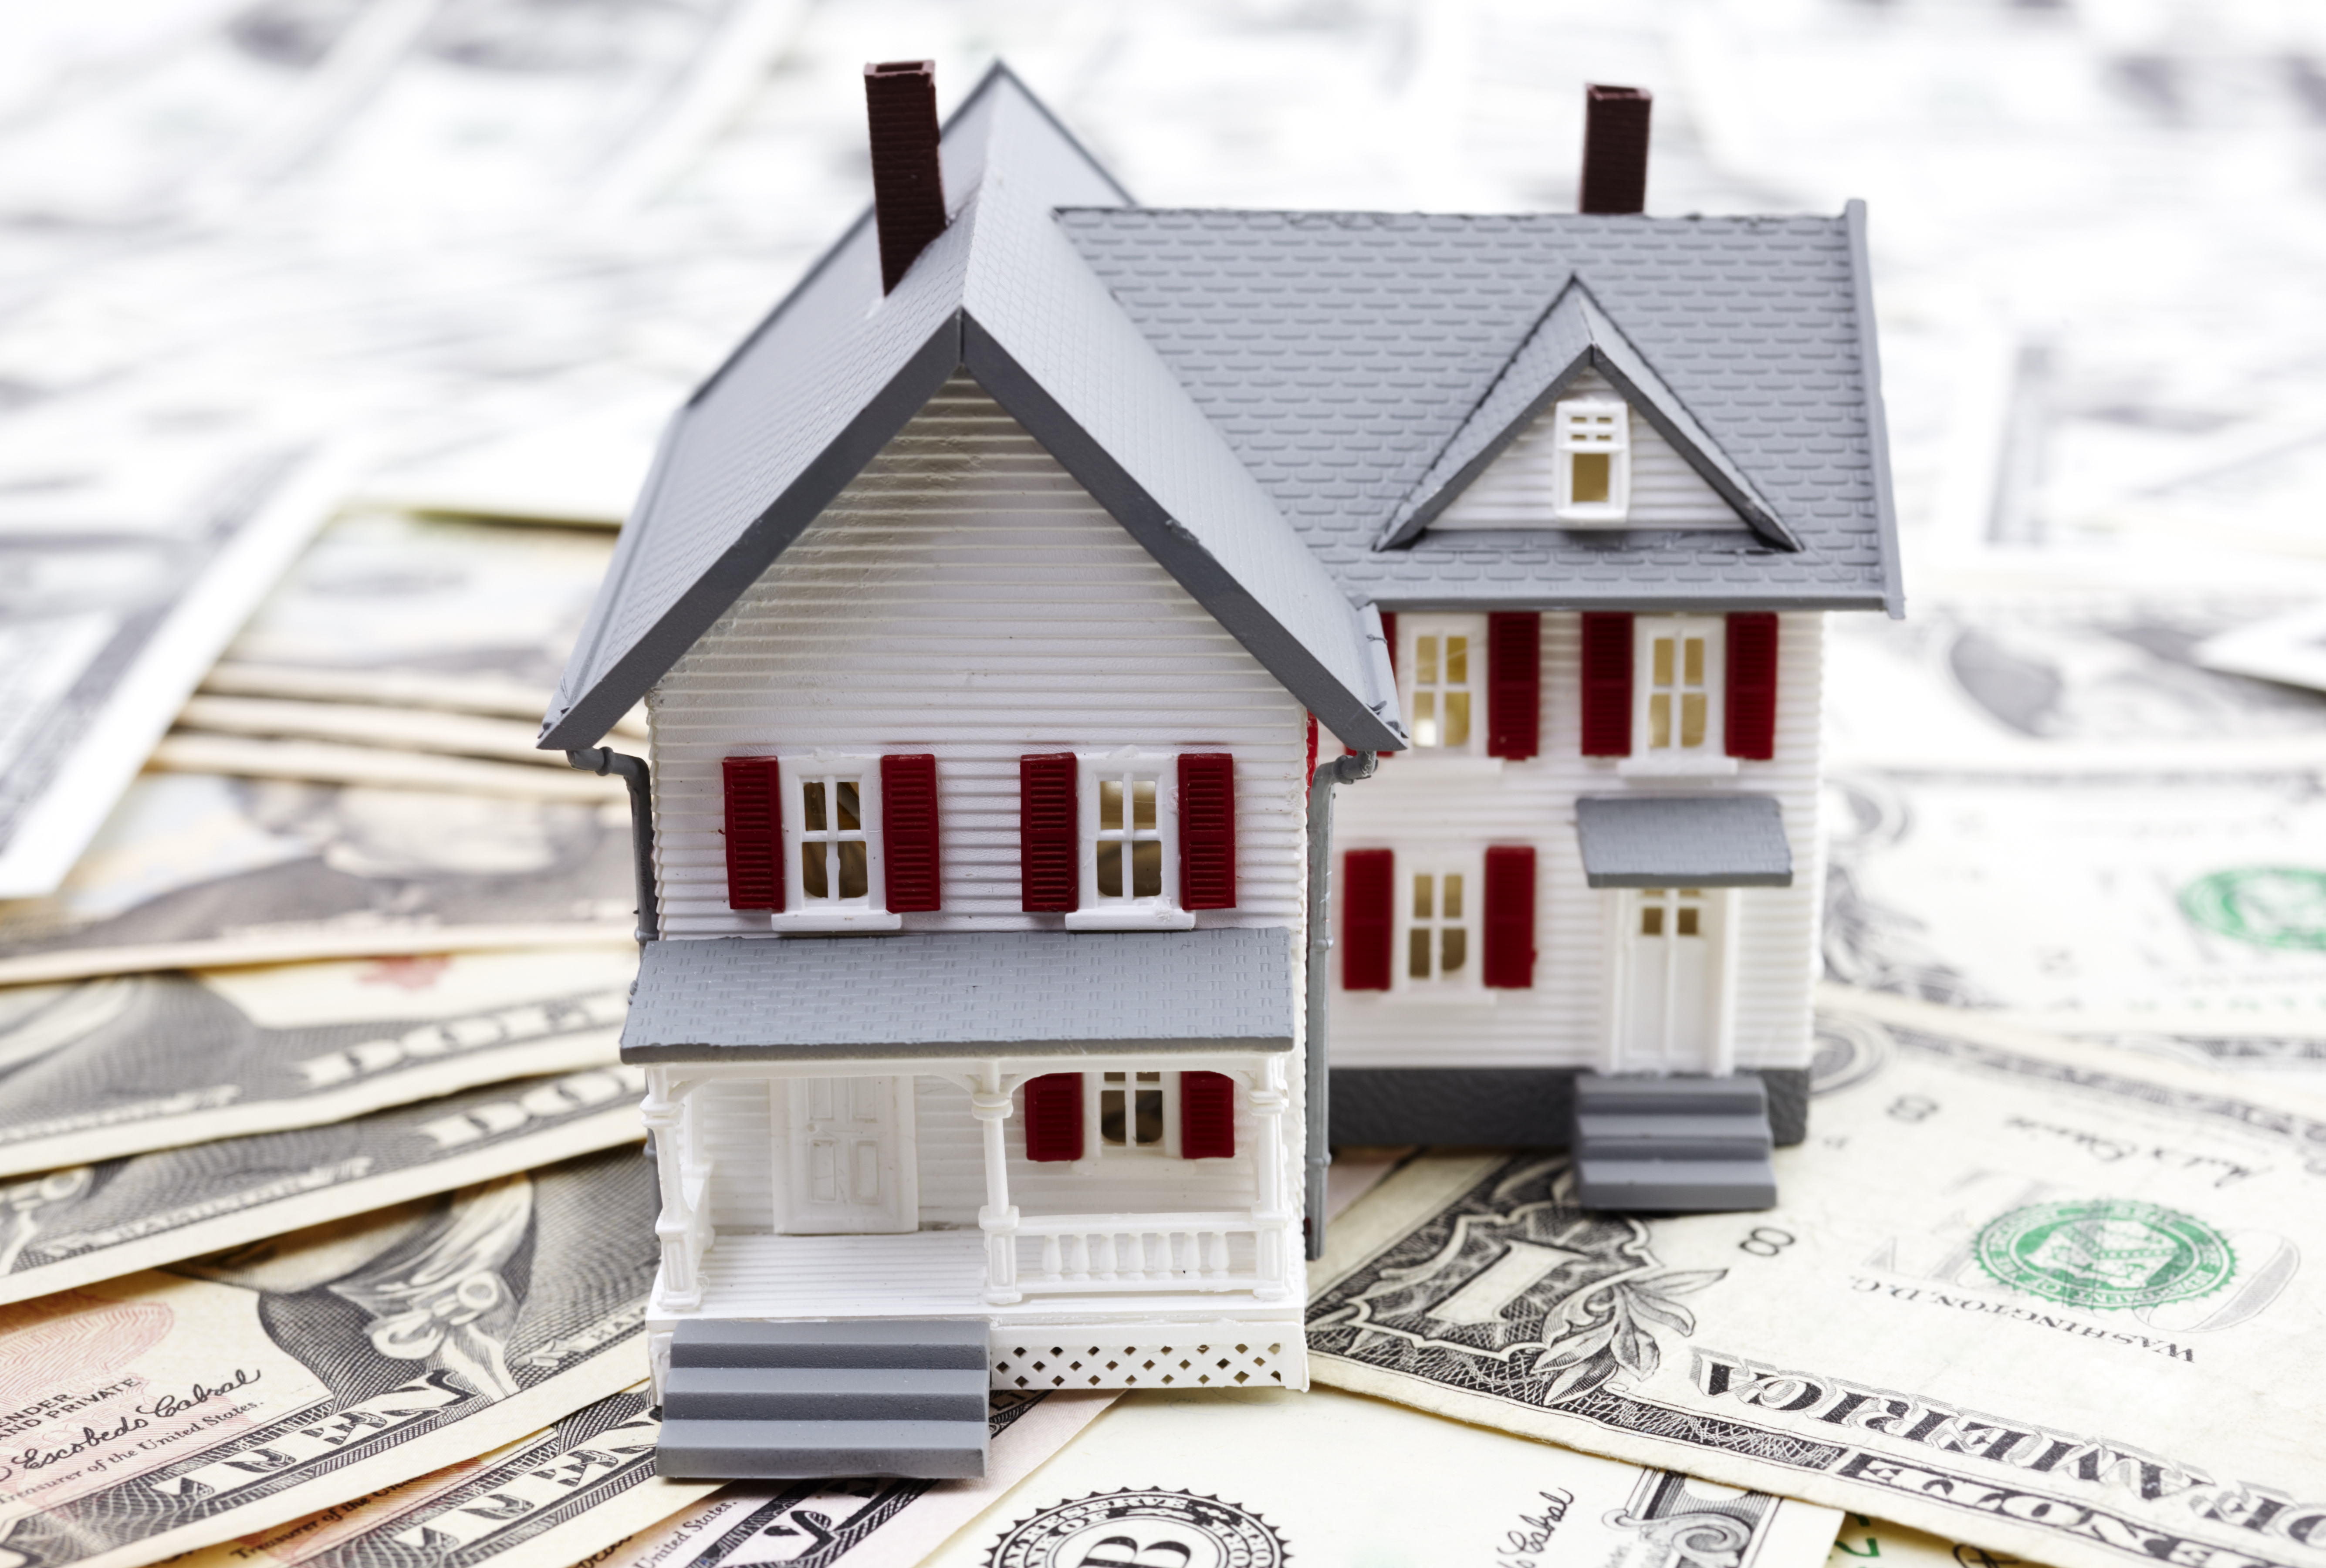 6 Tips On How to Save Money For a House | TexasLending.com